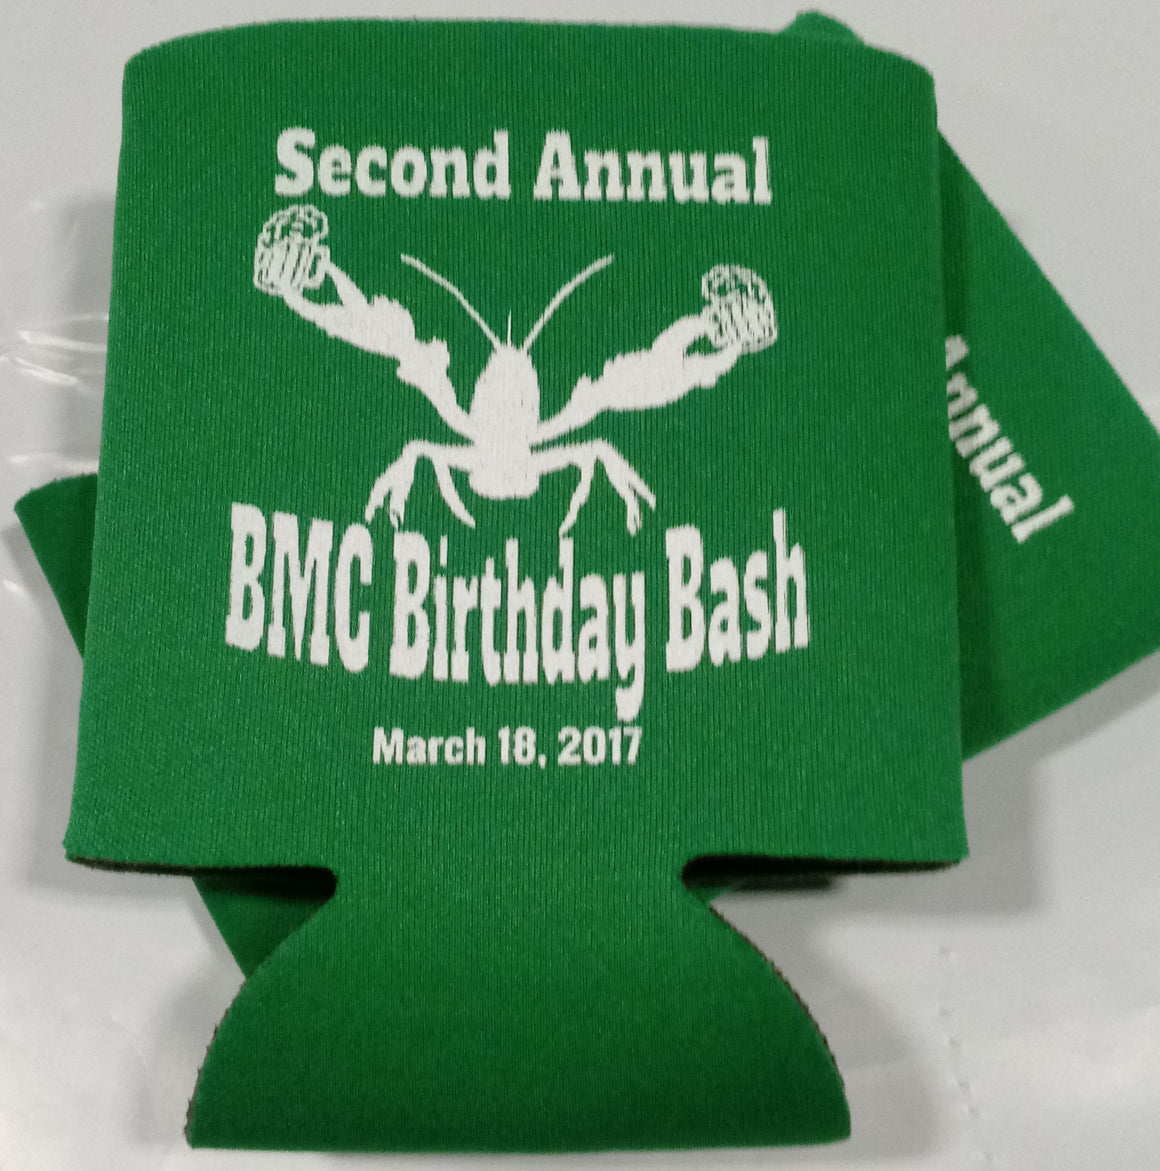 crawfish Birthday bash koozie can coolers